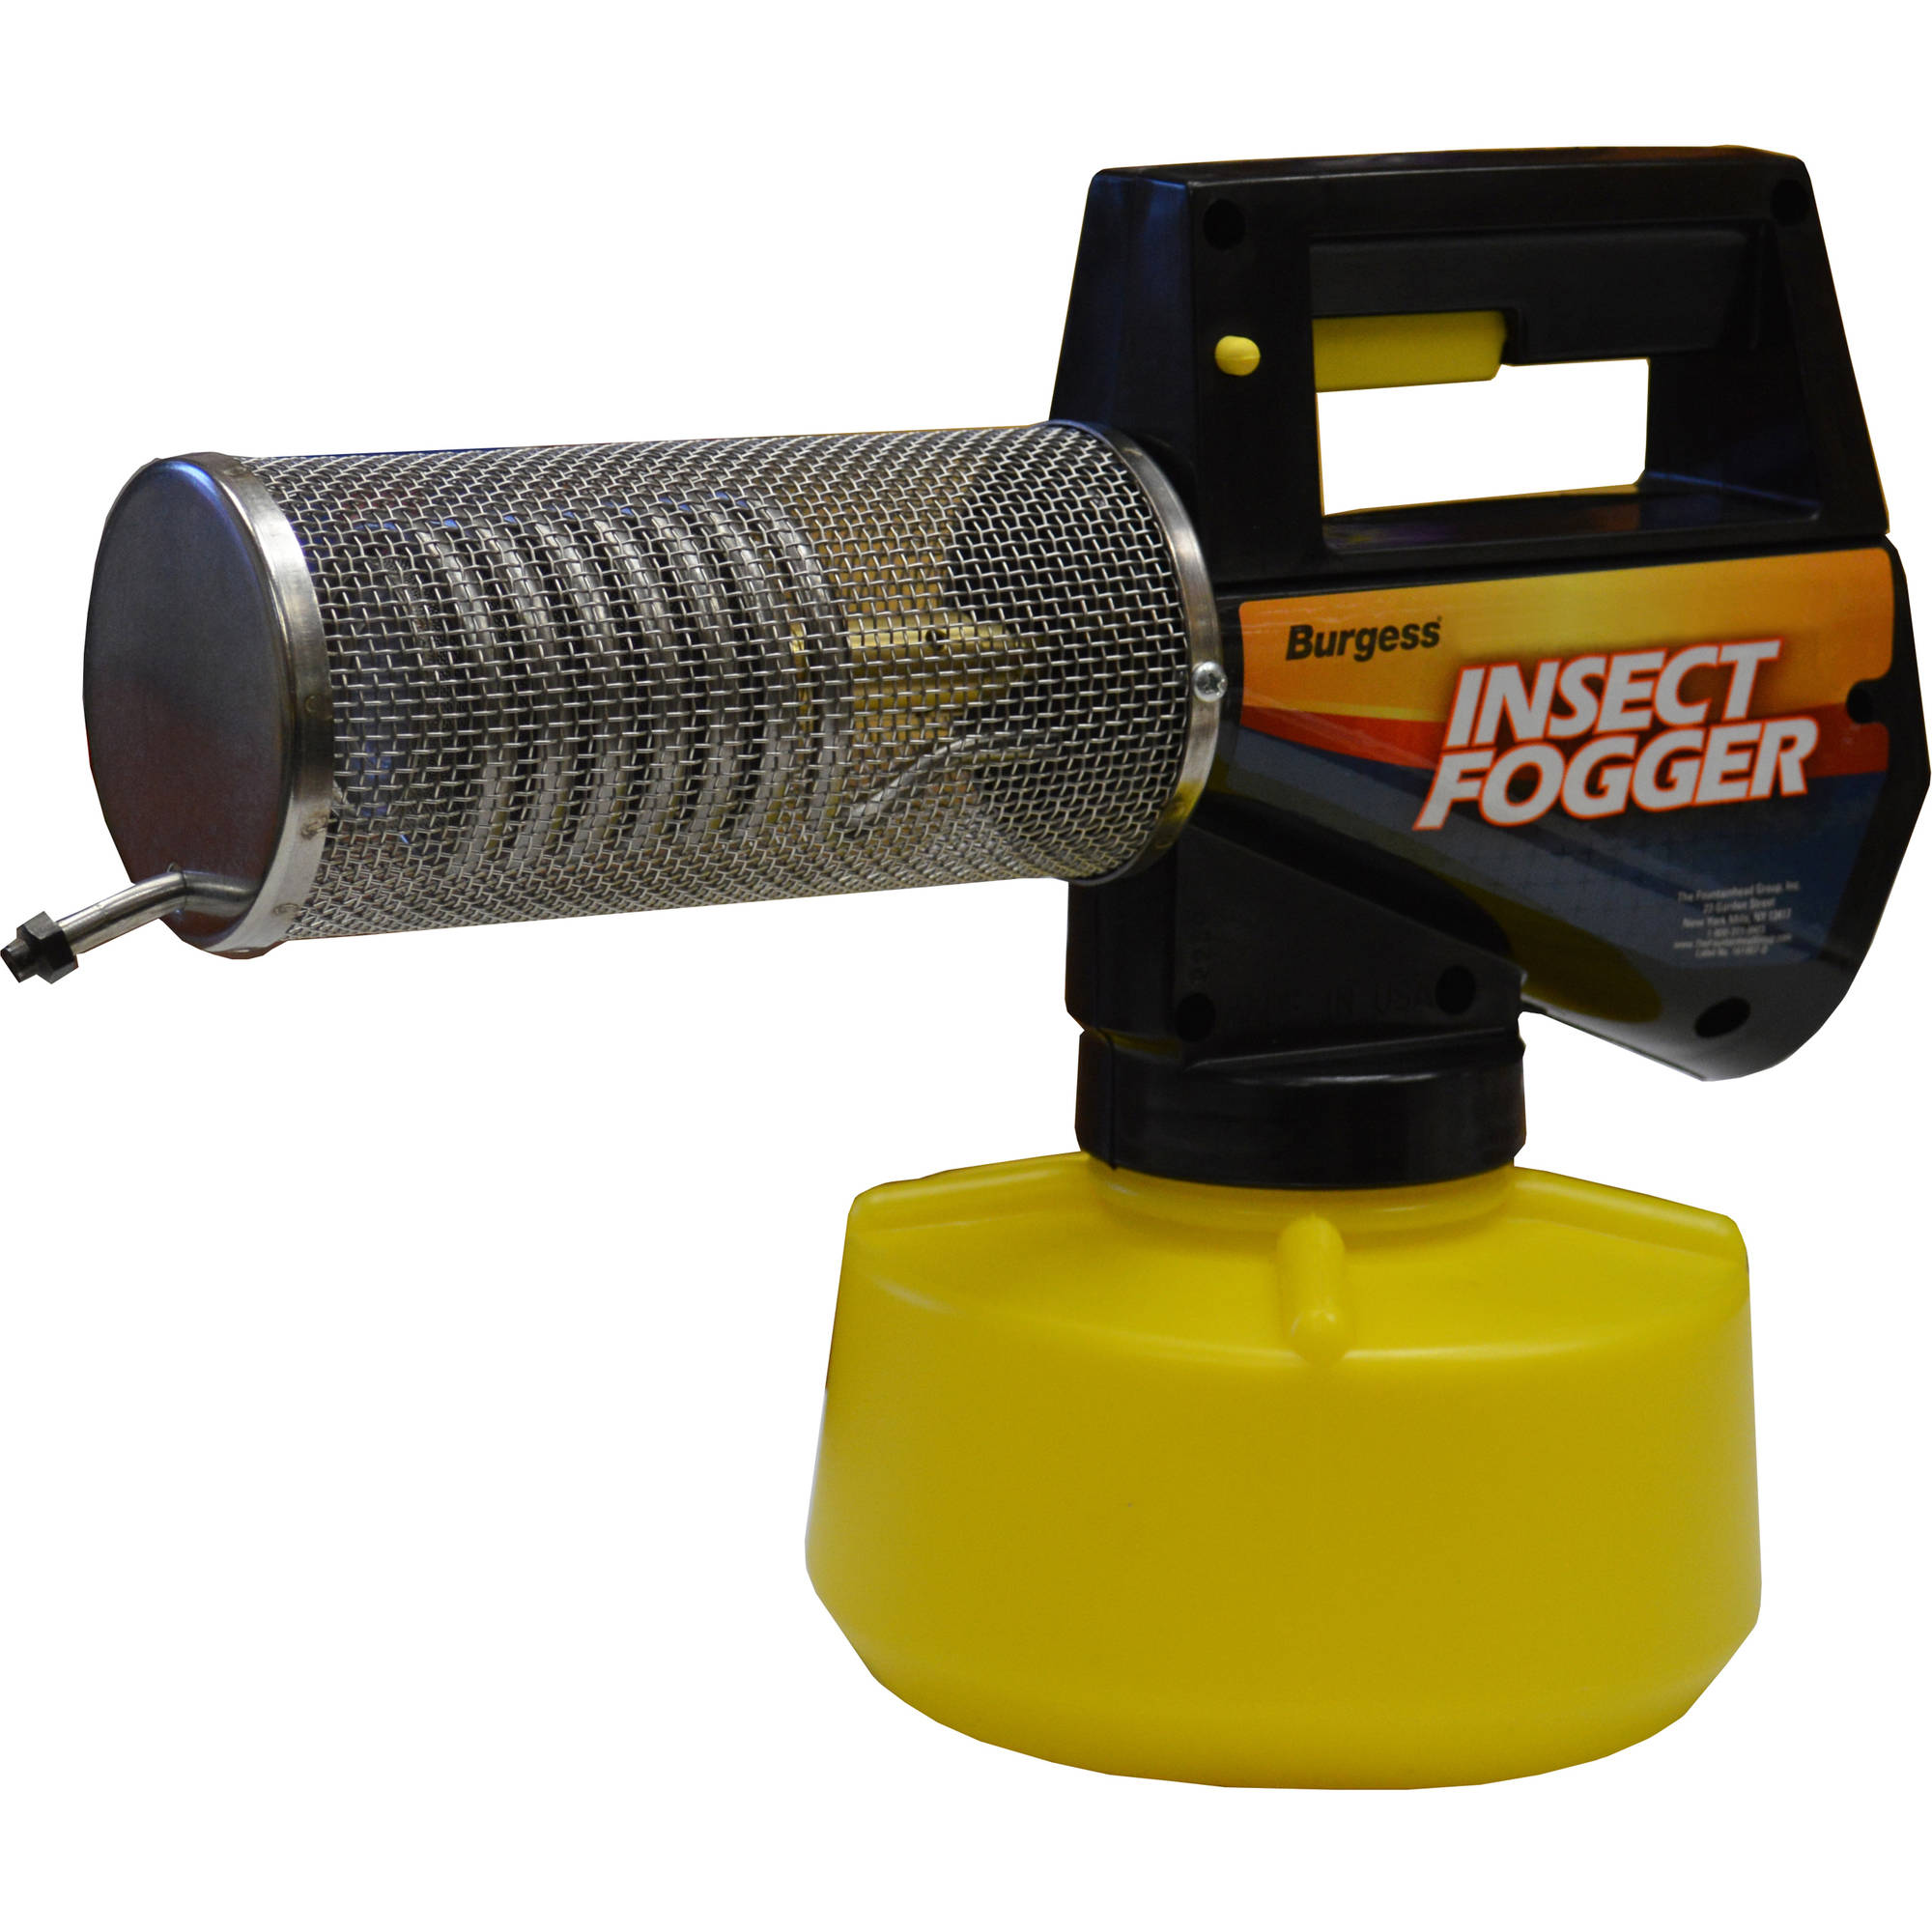 Burgess Propane Insect Fogger - Mosquito Repellent, Insect Repellent